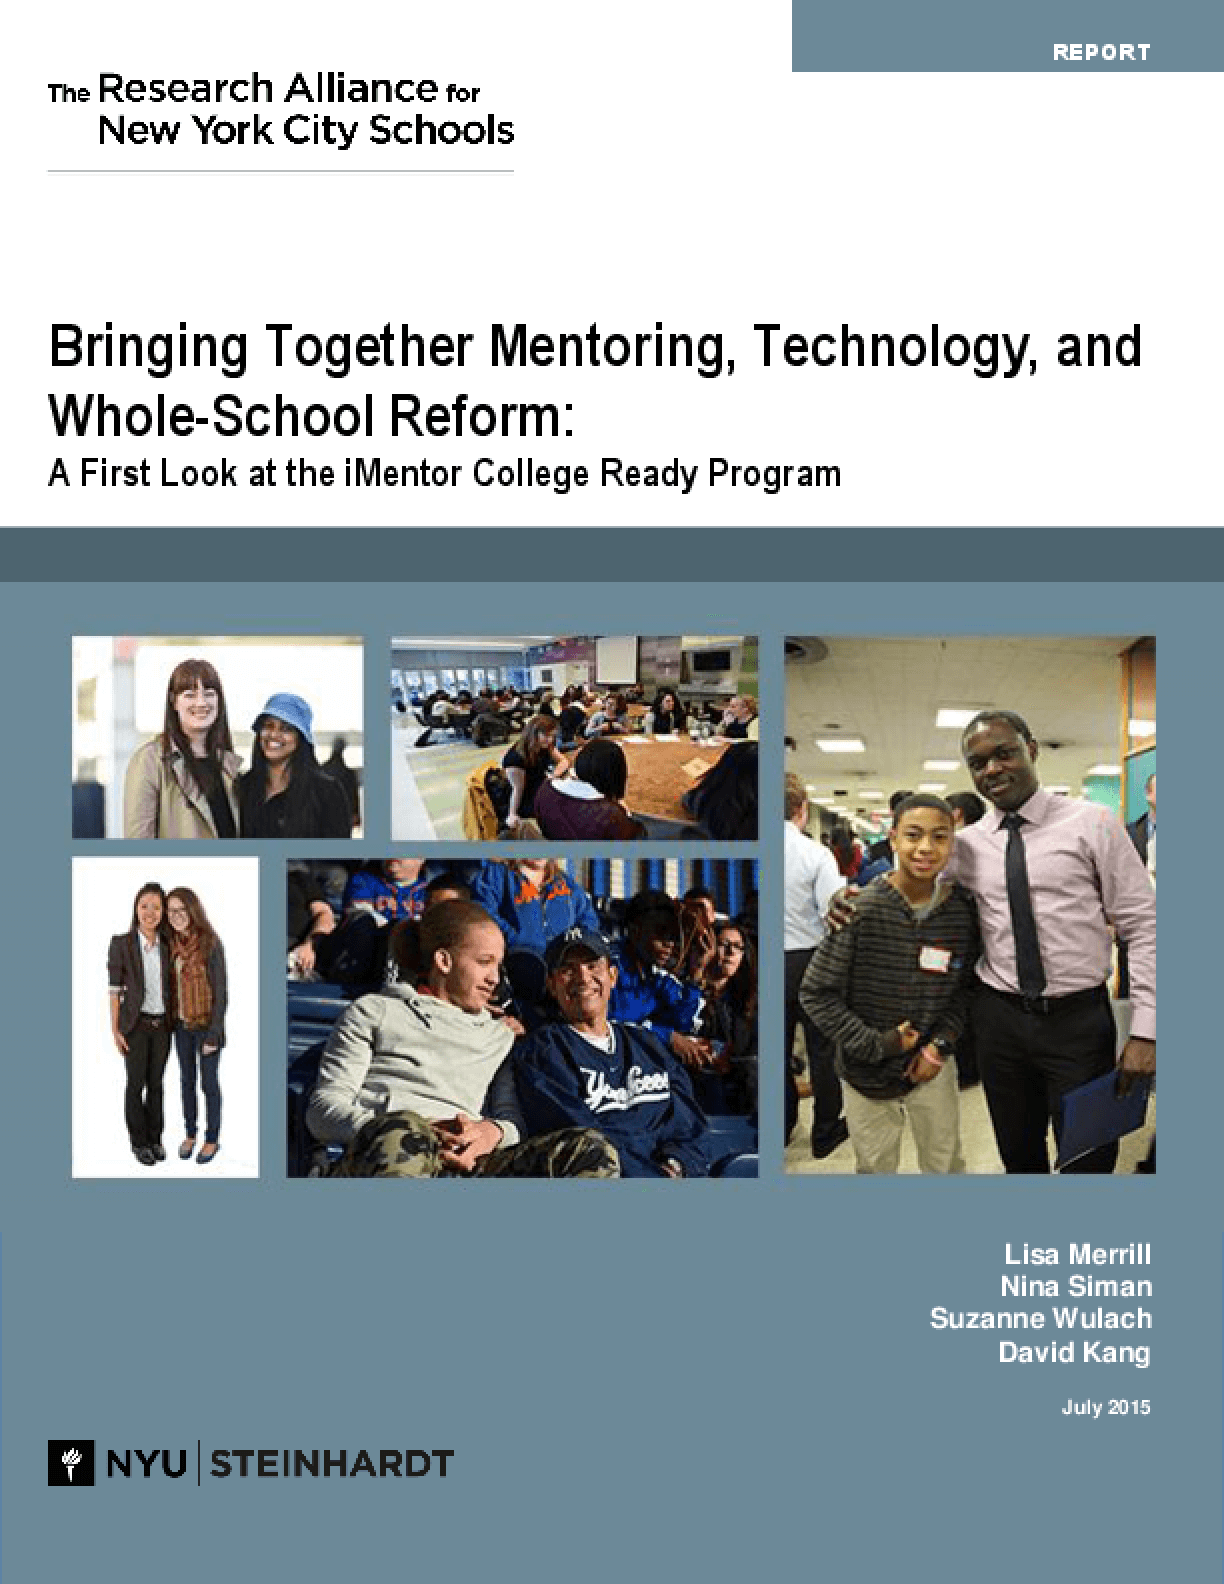 Bringing Together Mentoring, Technology, and Whole-School Reform: A First Look at the iMentor College Ready Program